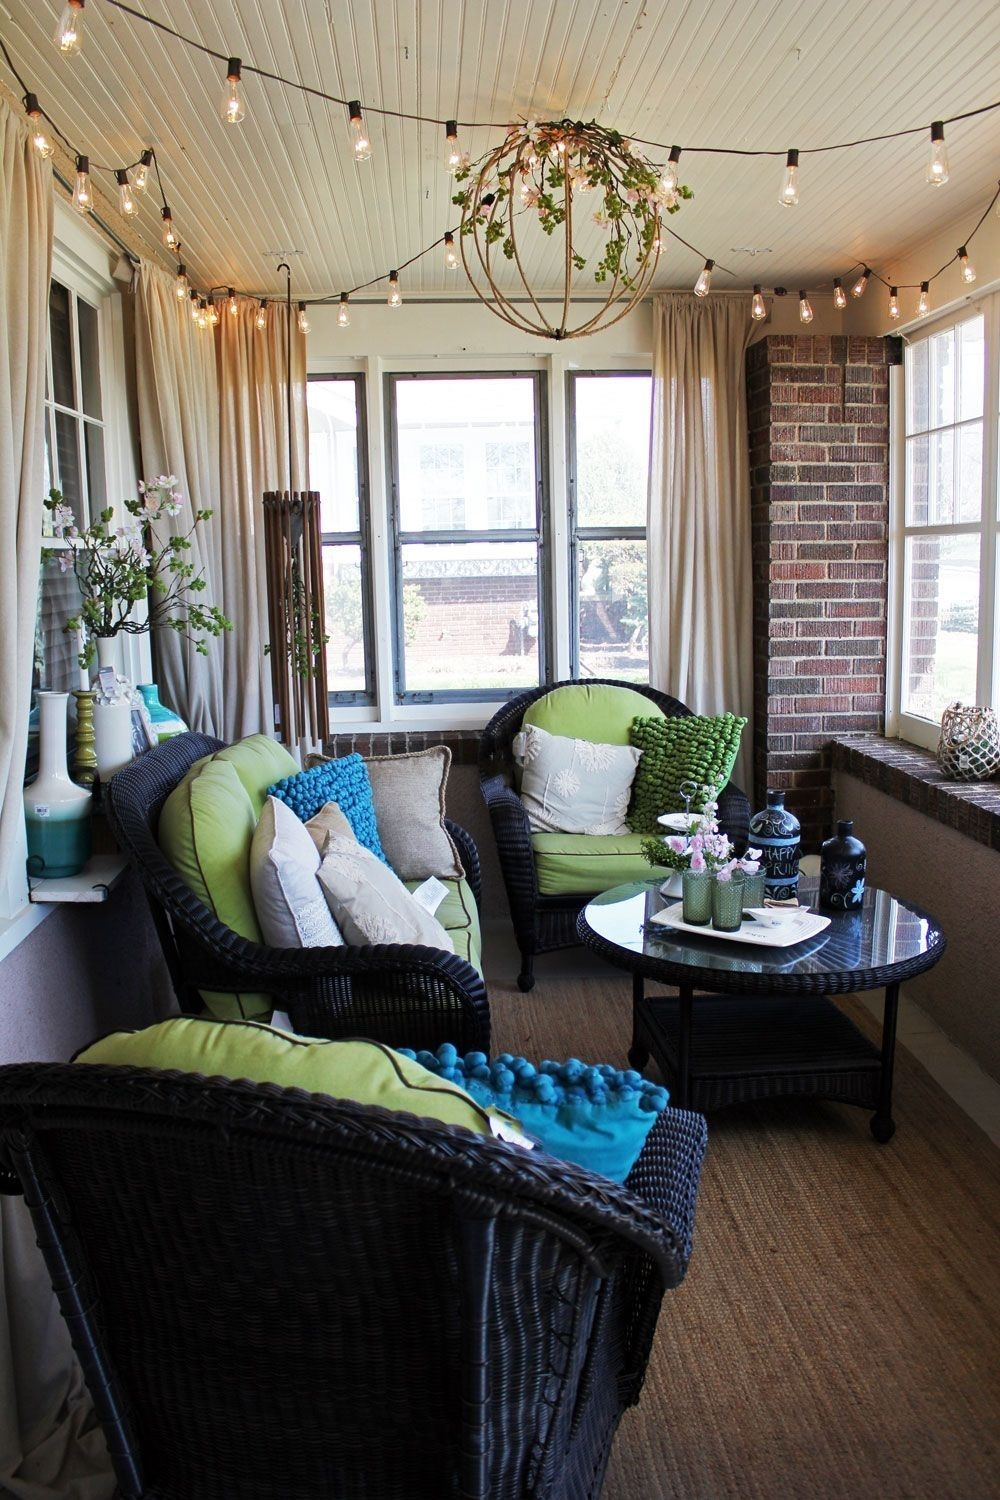 The 14 Best Enclosed Back Porch Decorating Ideas Ds19a4 Enclosed Porch Decorating Sunroom Decorating Porch Furniture